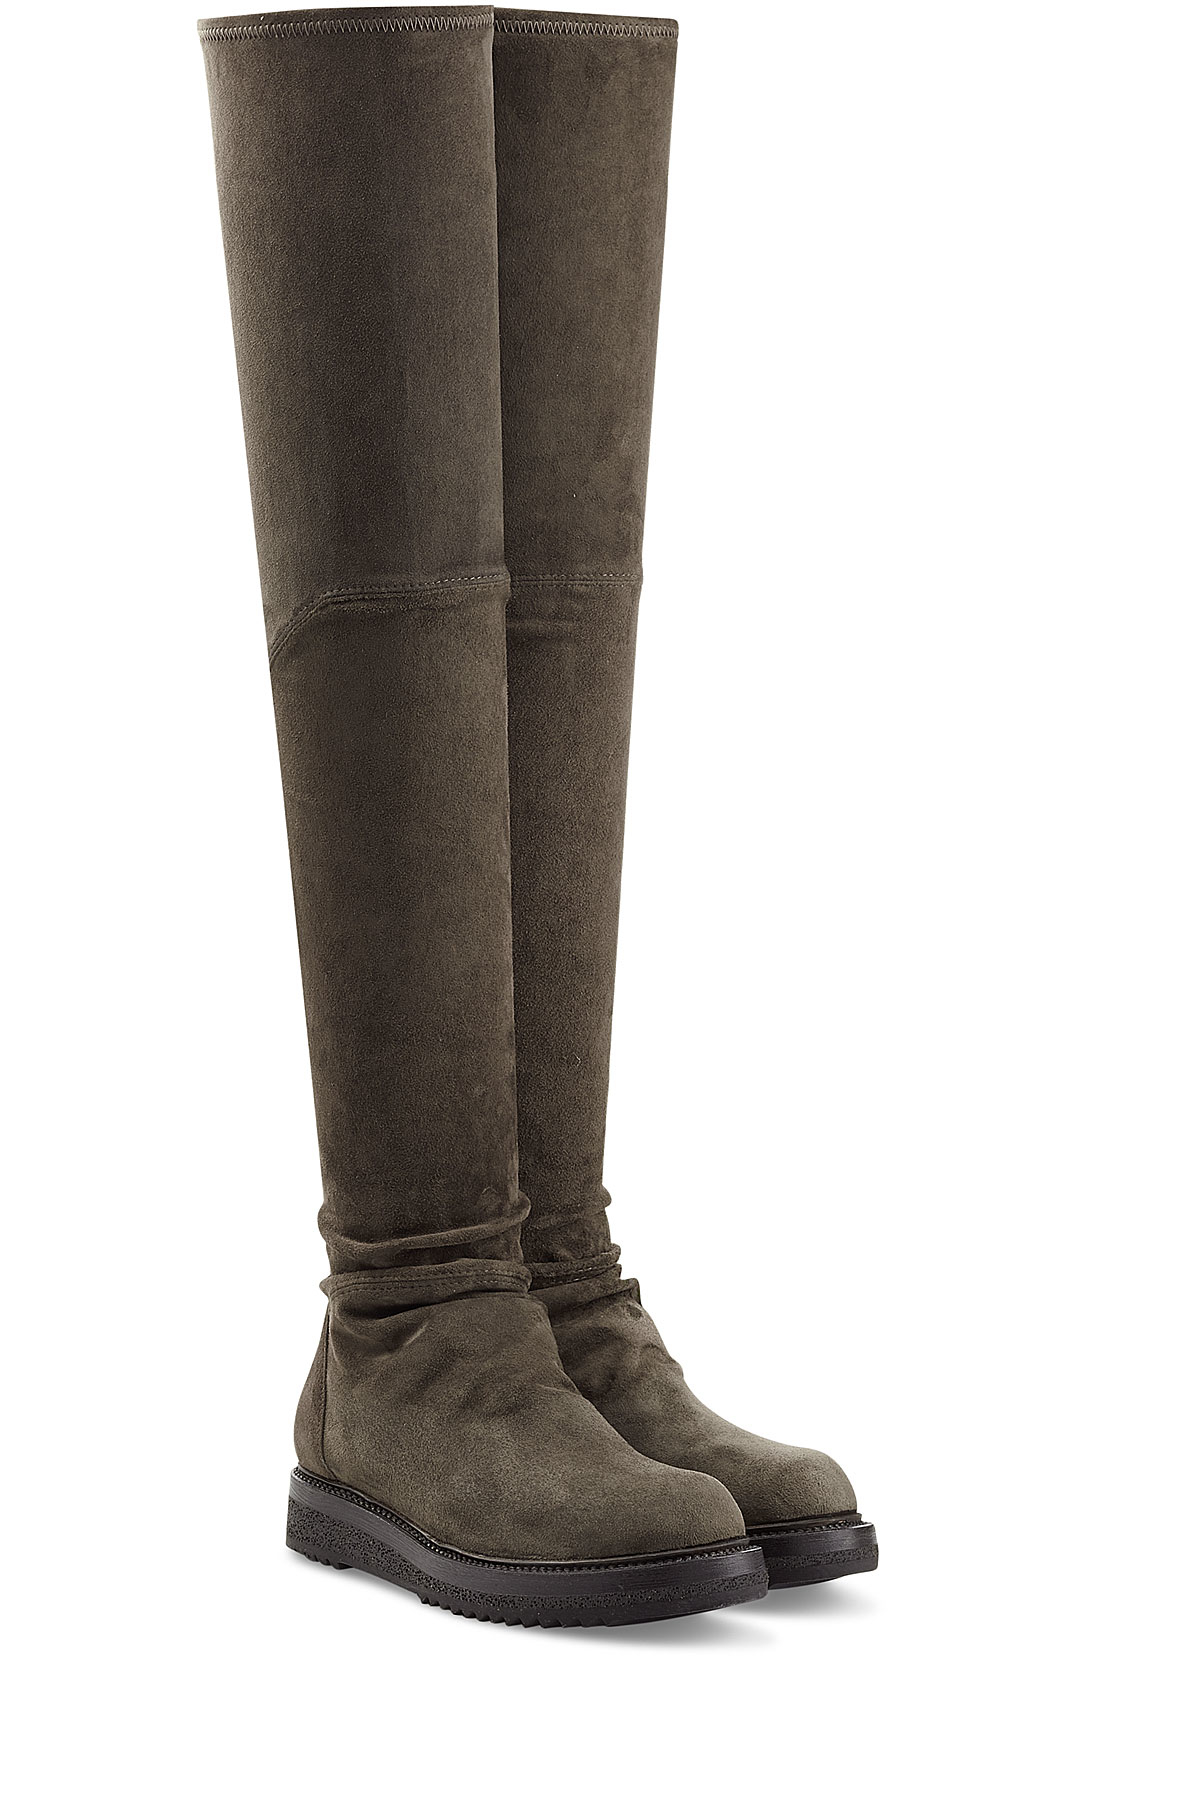 rick owens suede the knee boots in gray lyst